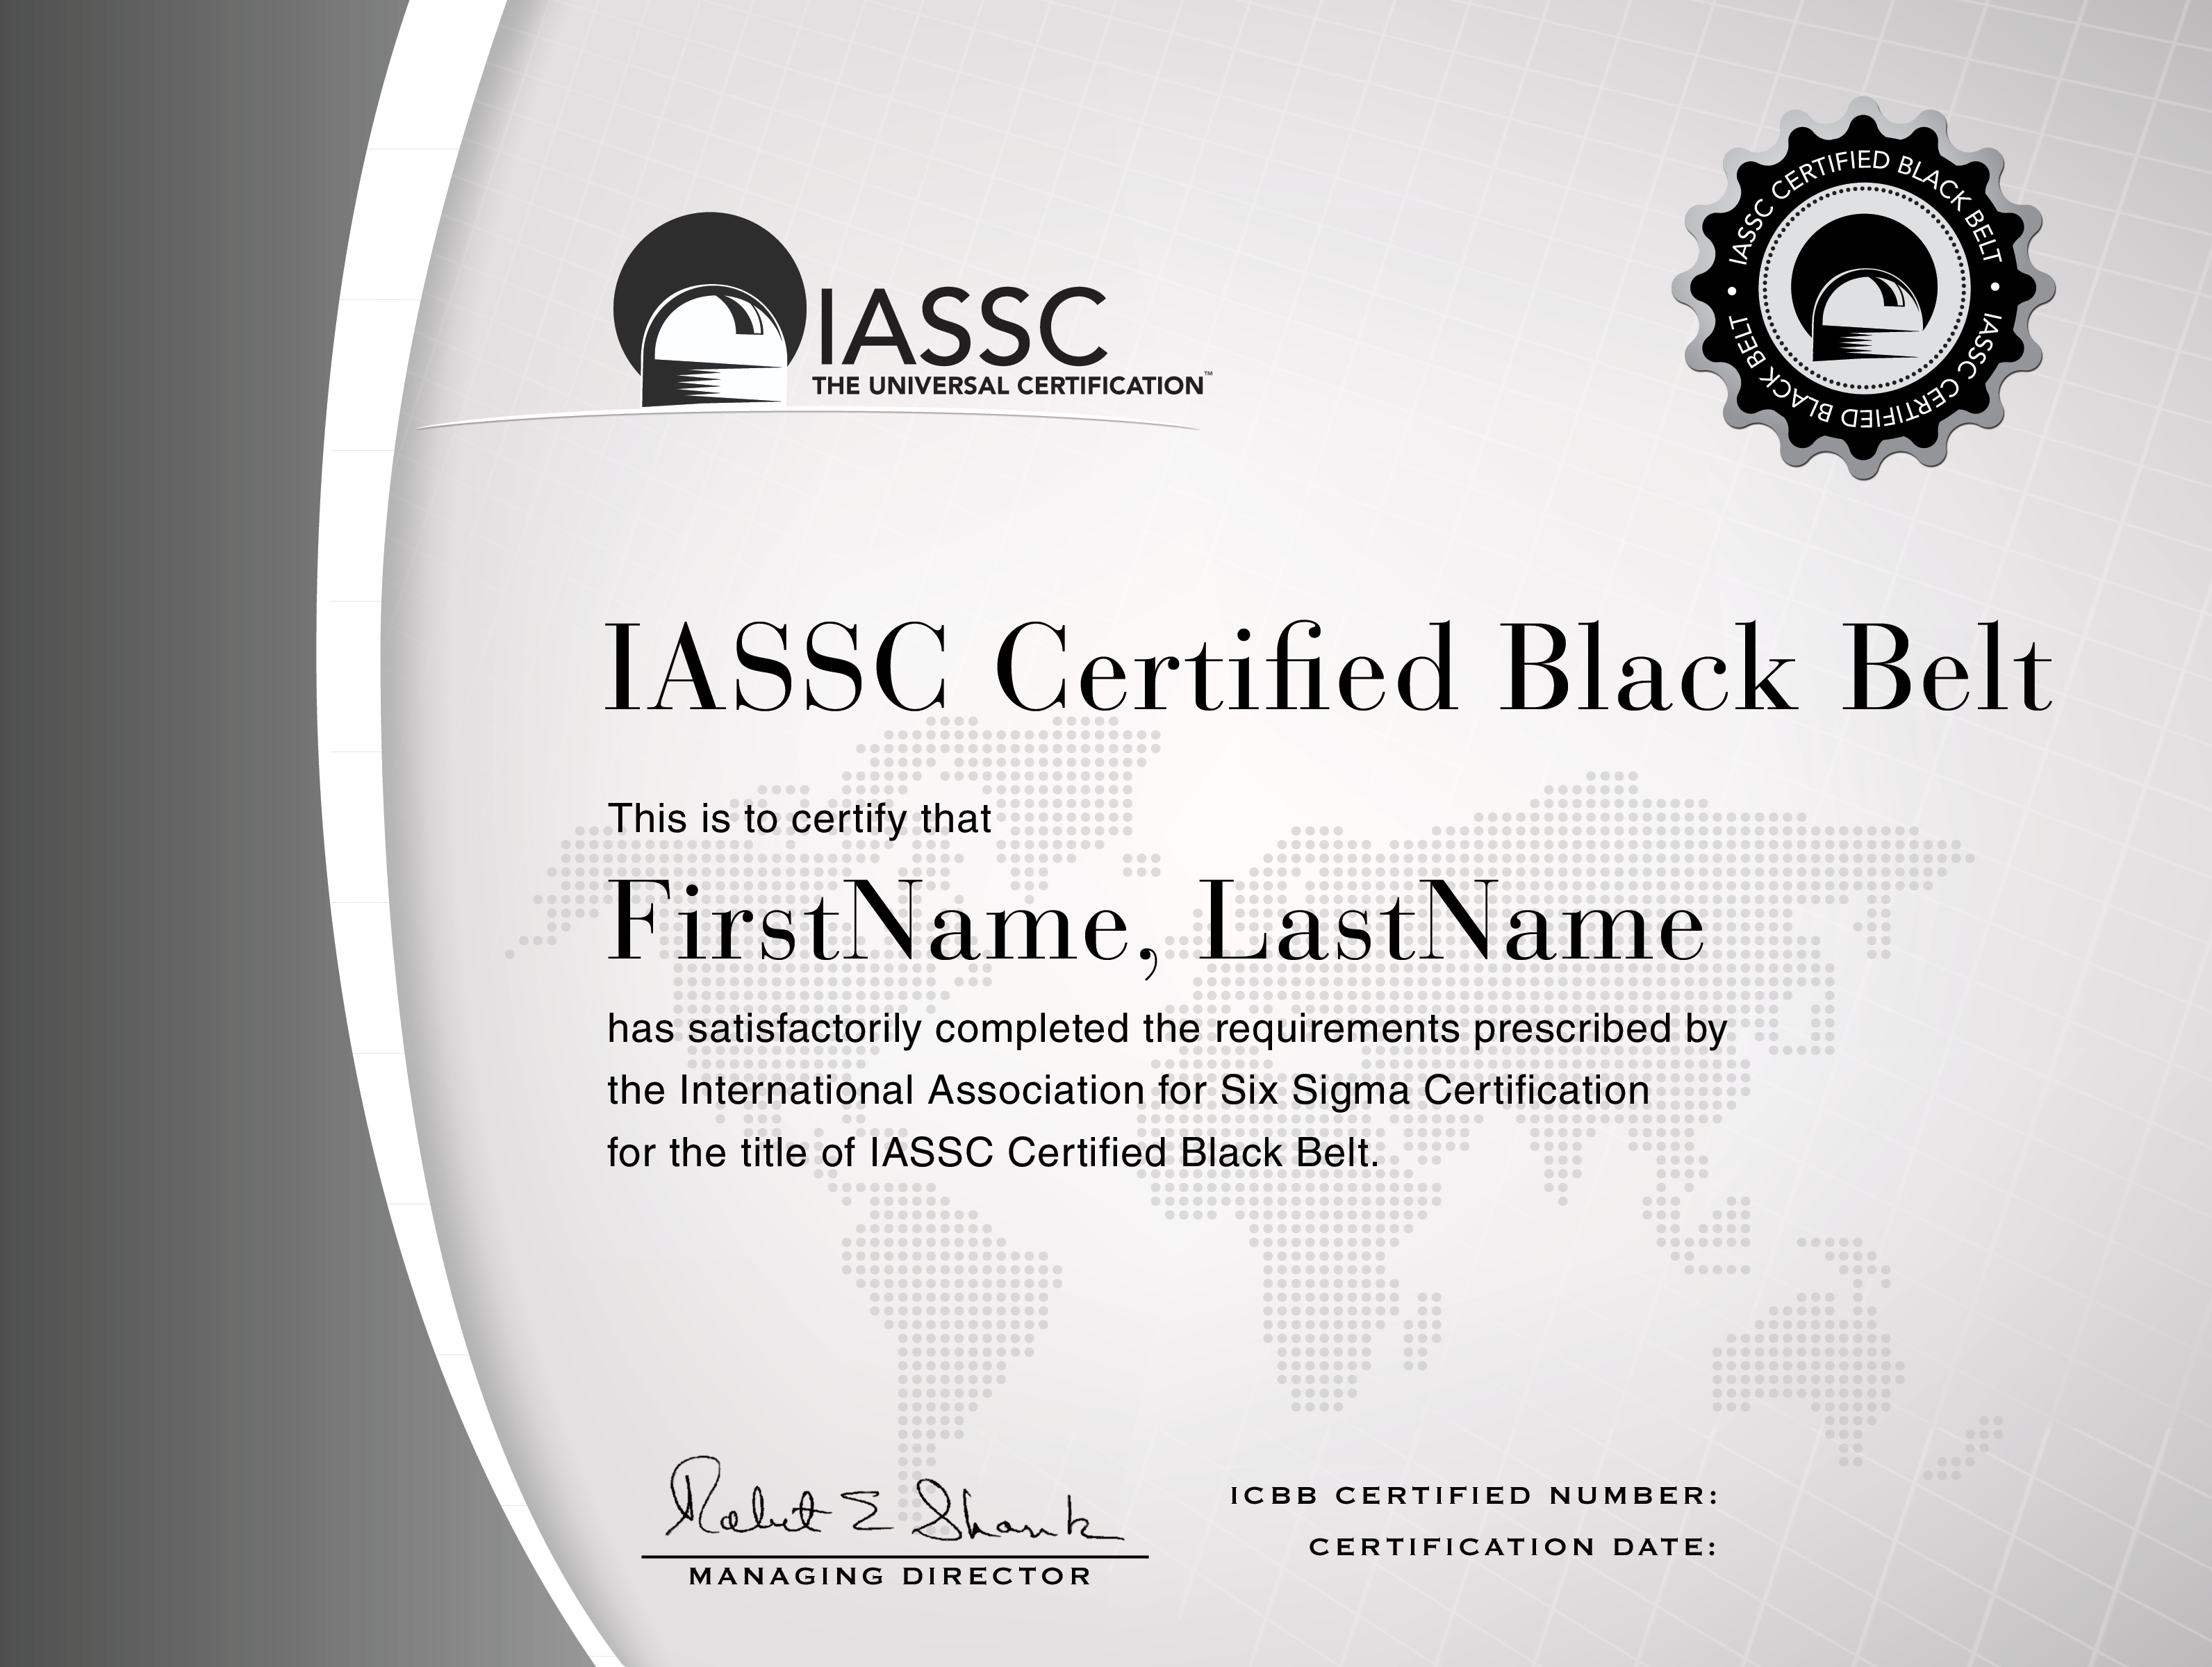 Iassc lean six sigma black belt certificationg 31842400 iassc lean six sigma black belt certificationg xflitez Gallery